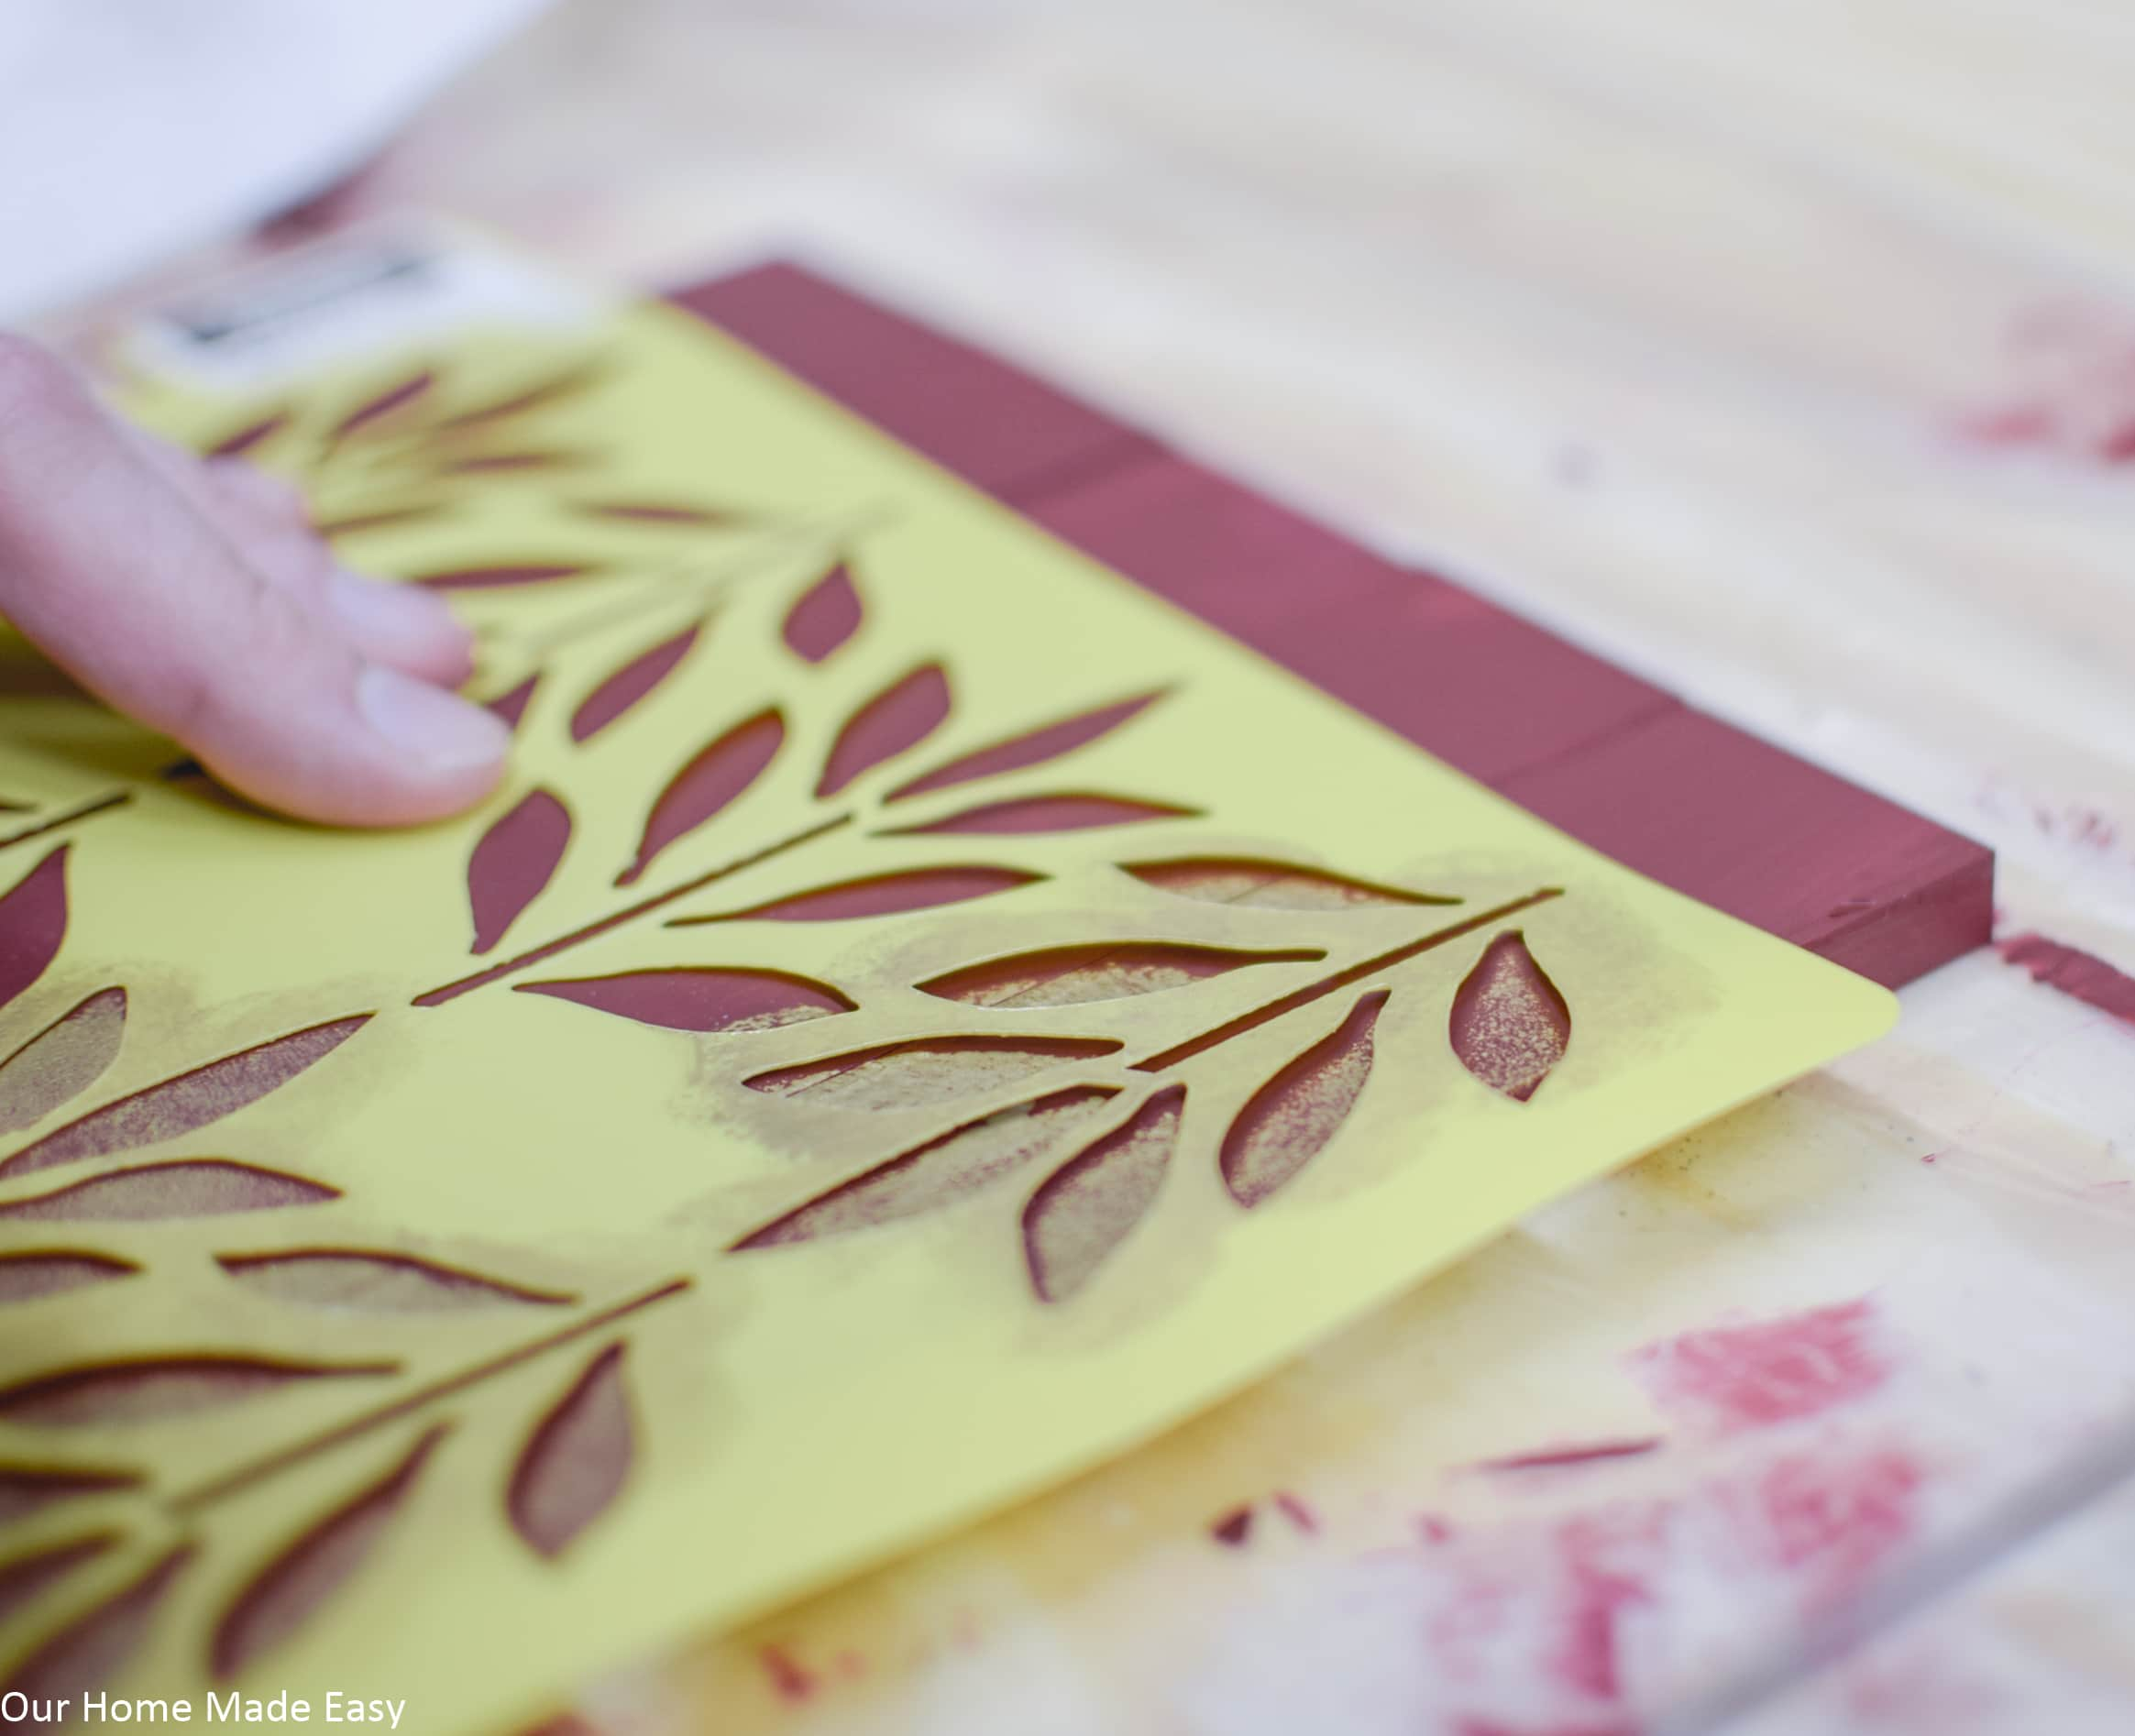 You can use patterned stencils to decorate your wood picture frame